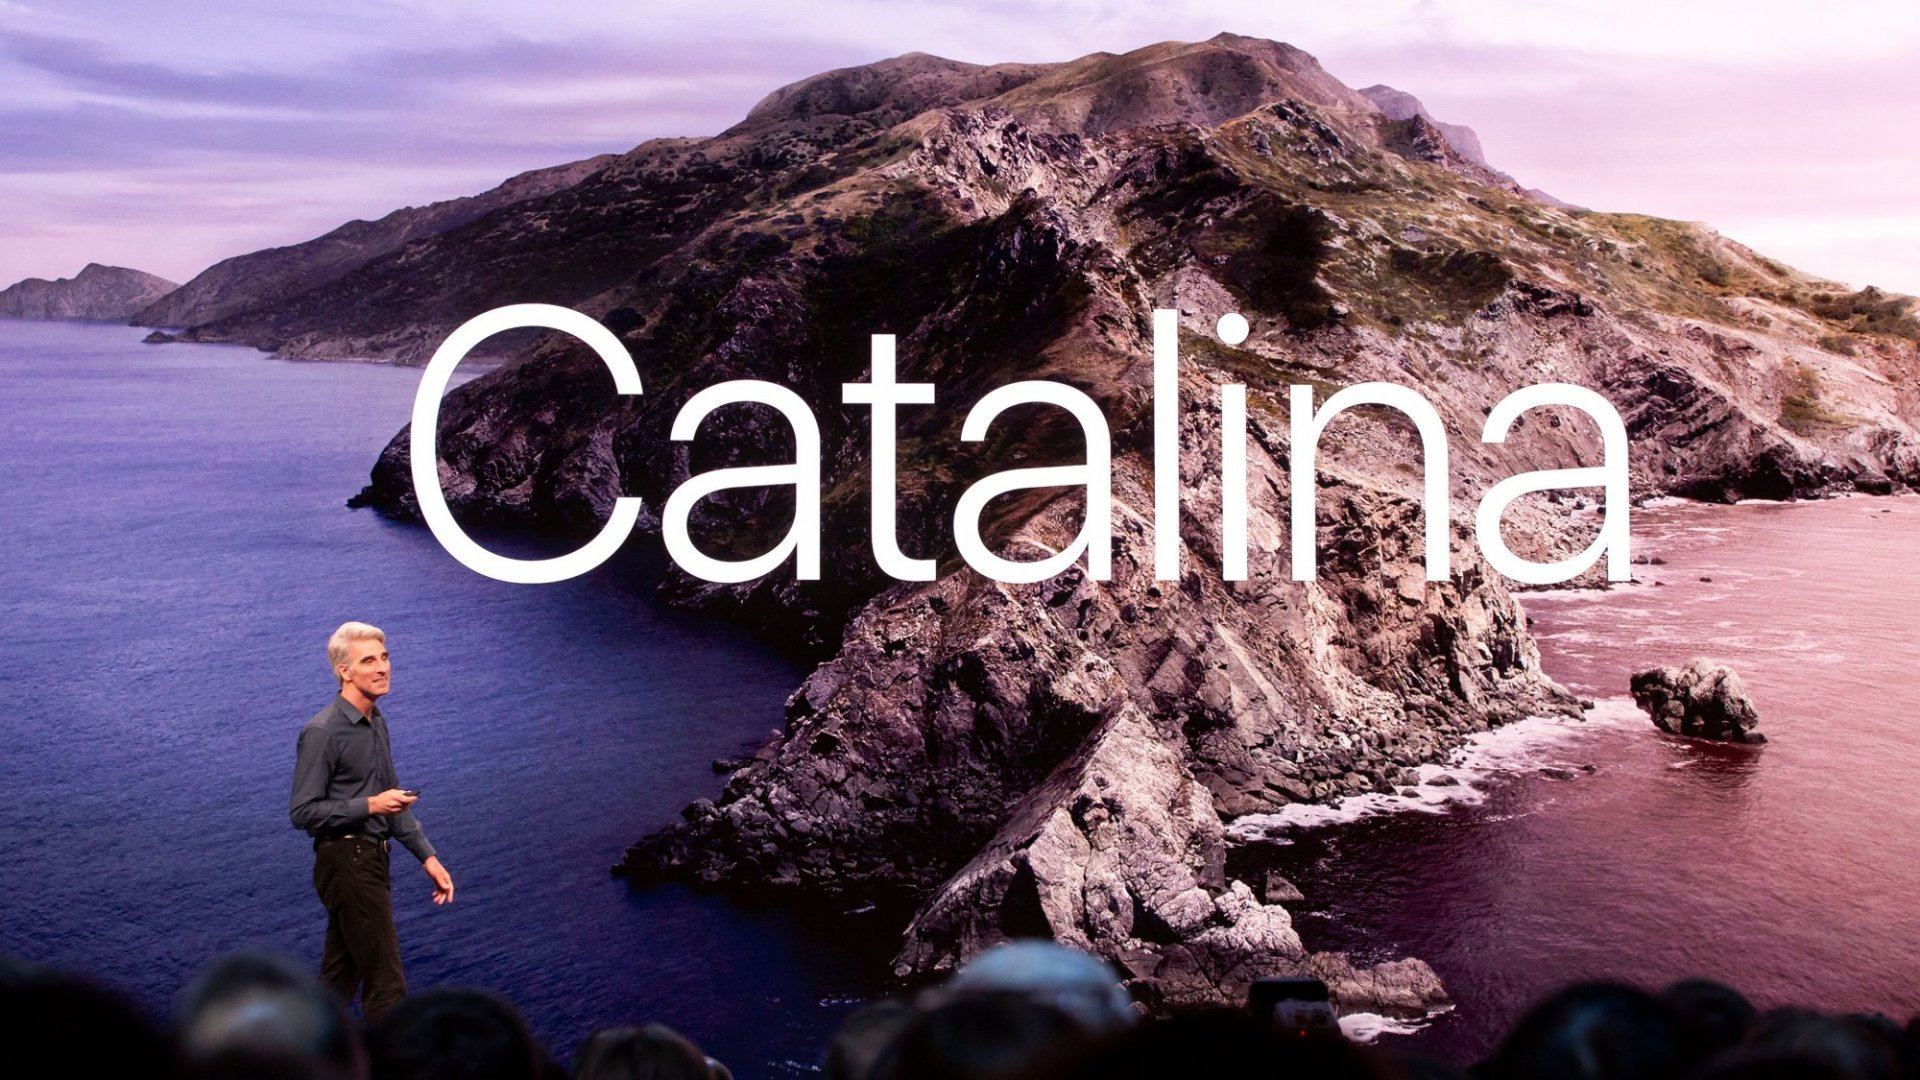 These Are the 7 Best Features of macOS Catalina and Why You Should Upgrade Right Now